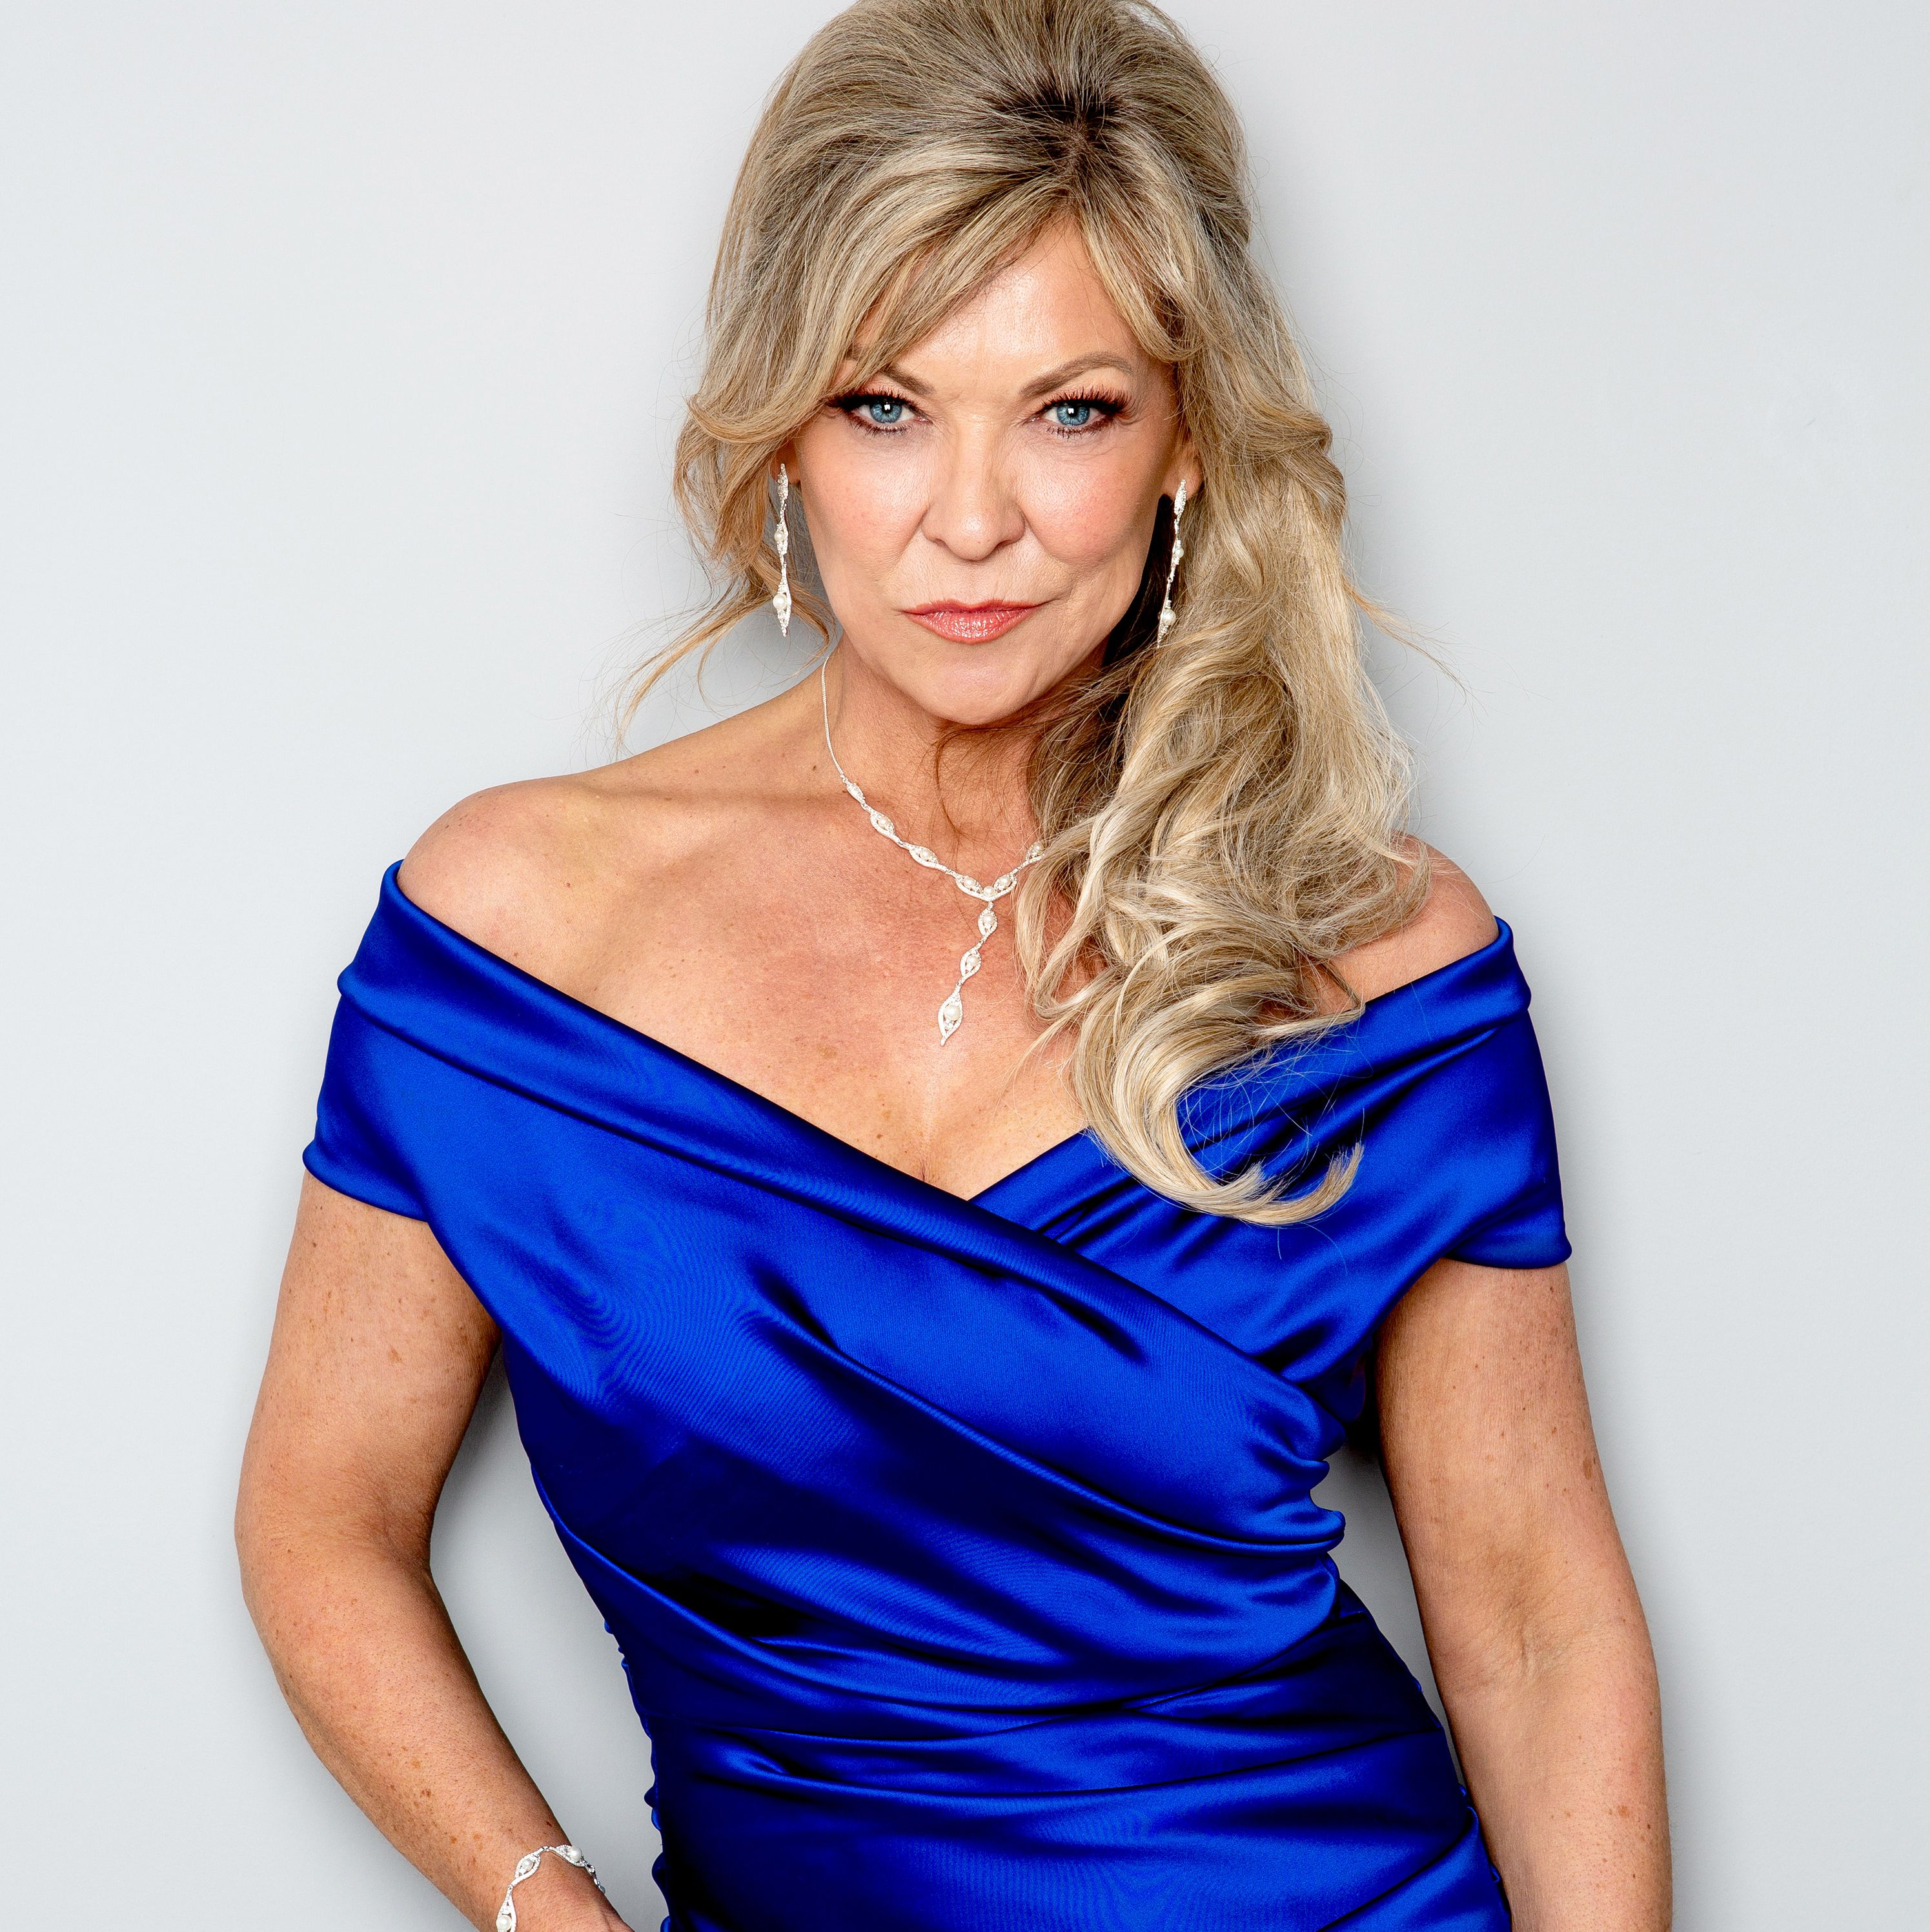 Emmerdale star Claire King thrives off audience hatred towards her character Kim Tate